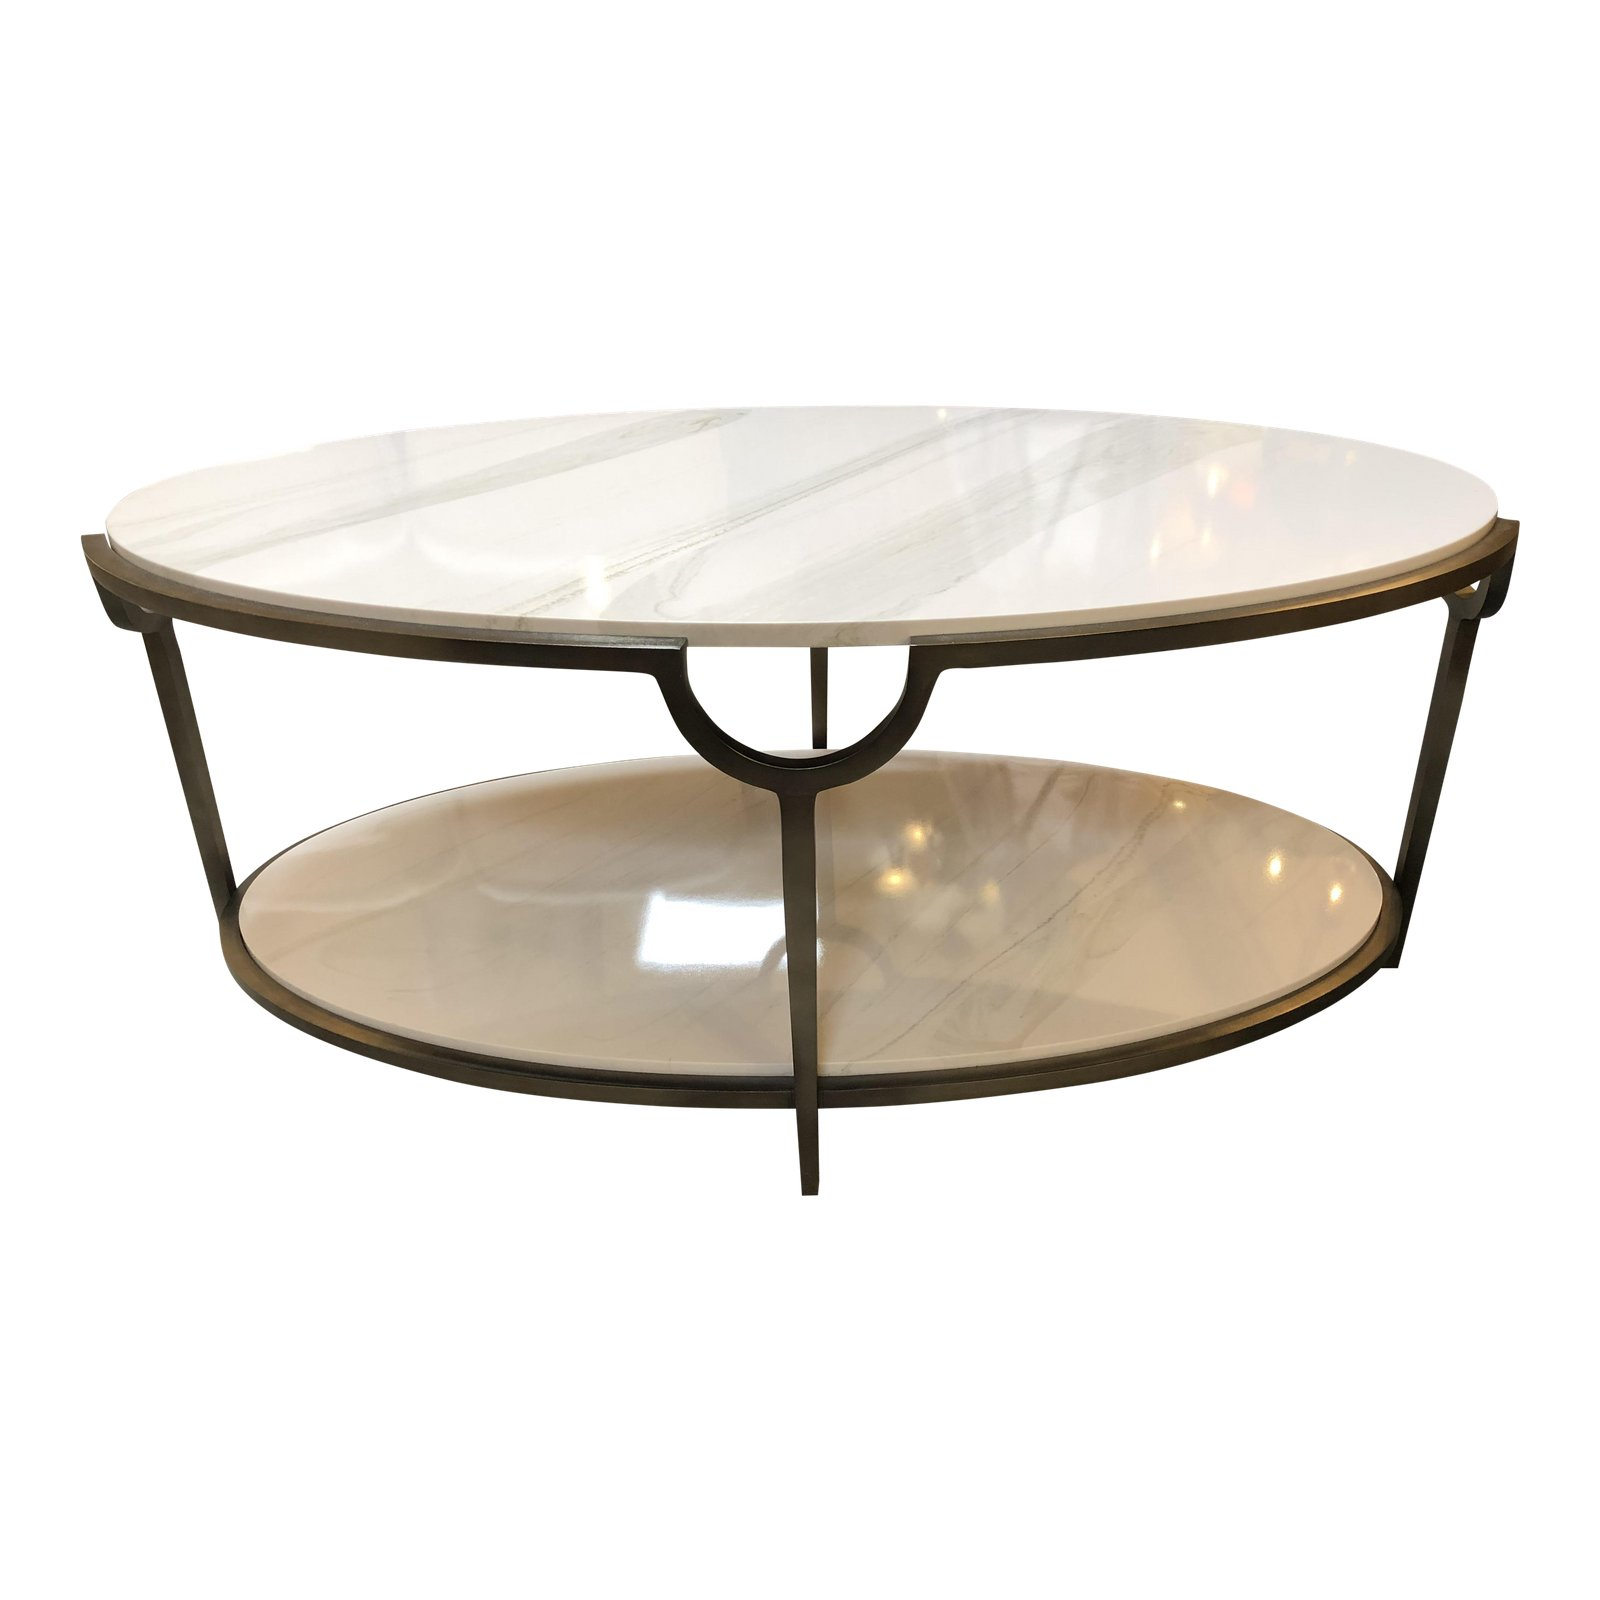 Sensational Morello Oval Cocktail Table By Bernhardt Furniture Company Theyellowbook Wood Chair Design Ideas Theyellowbookinfo